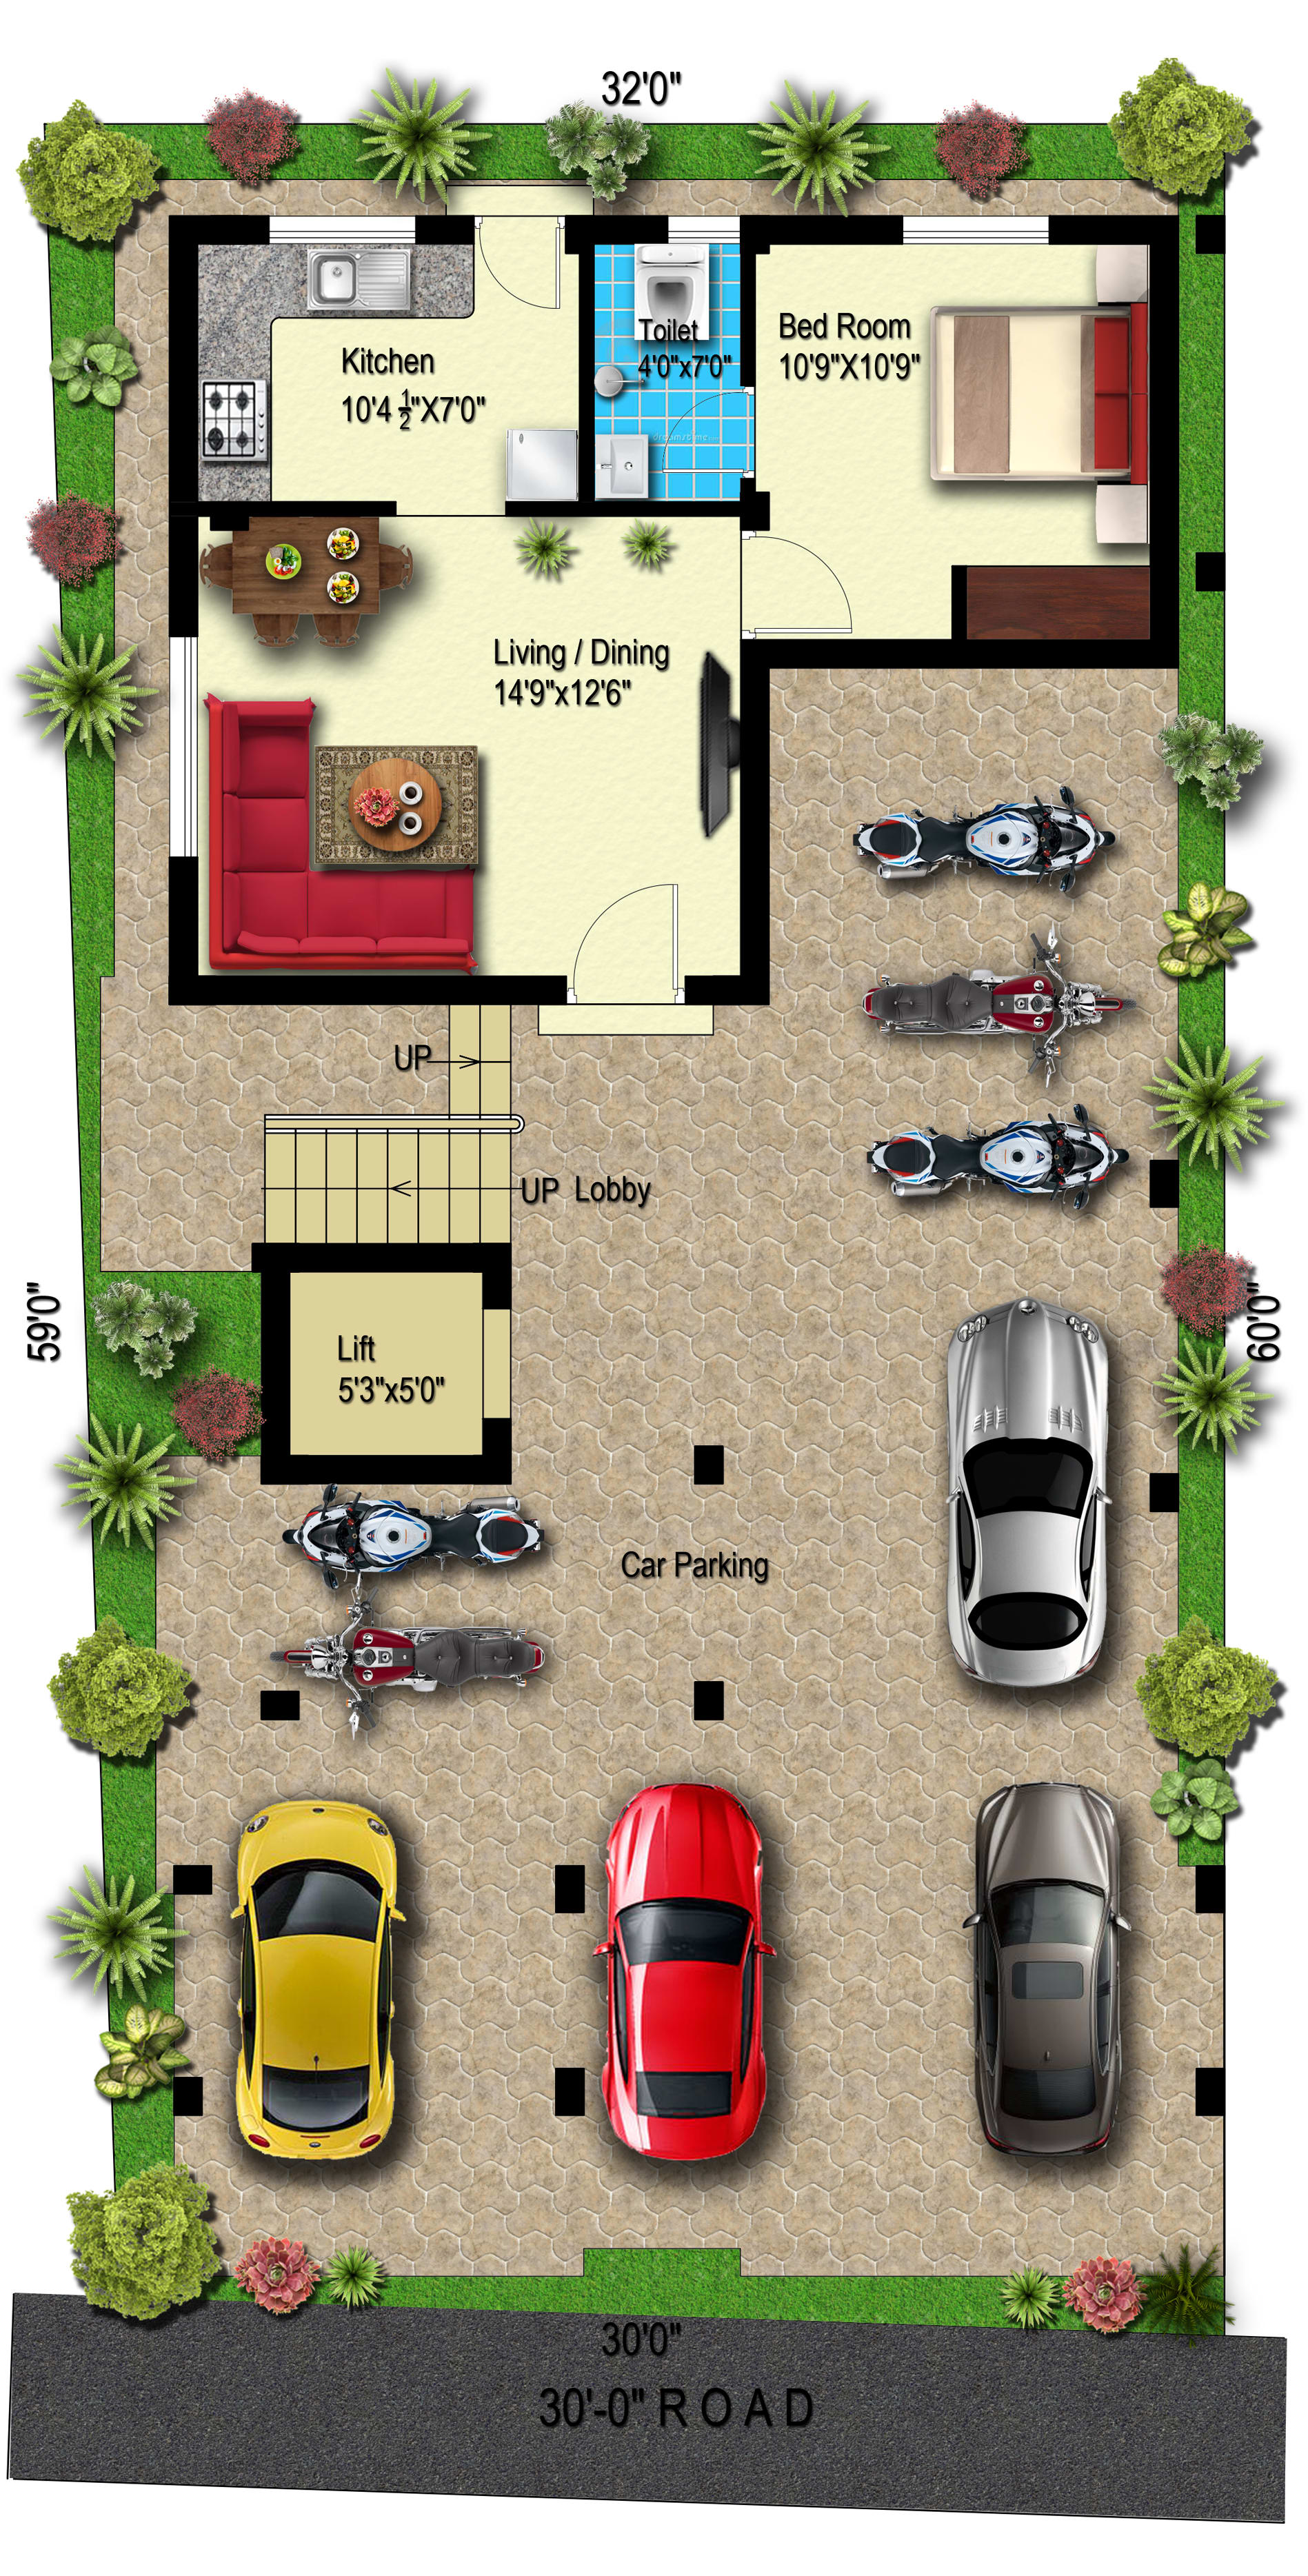 Draw Floor Plan Expert In 2d Plan With Material And Shading By Robin Asr Fiverr